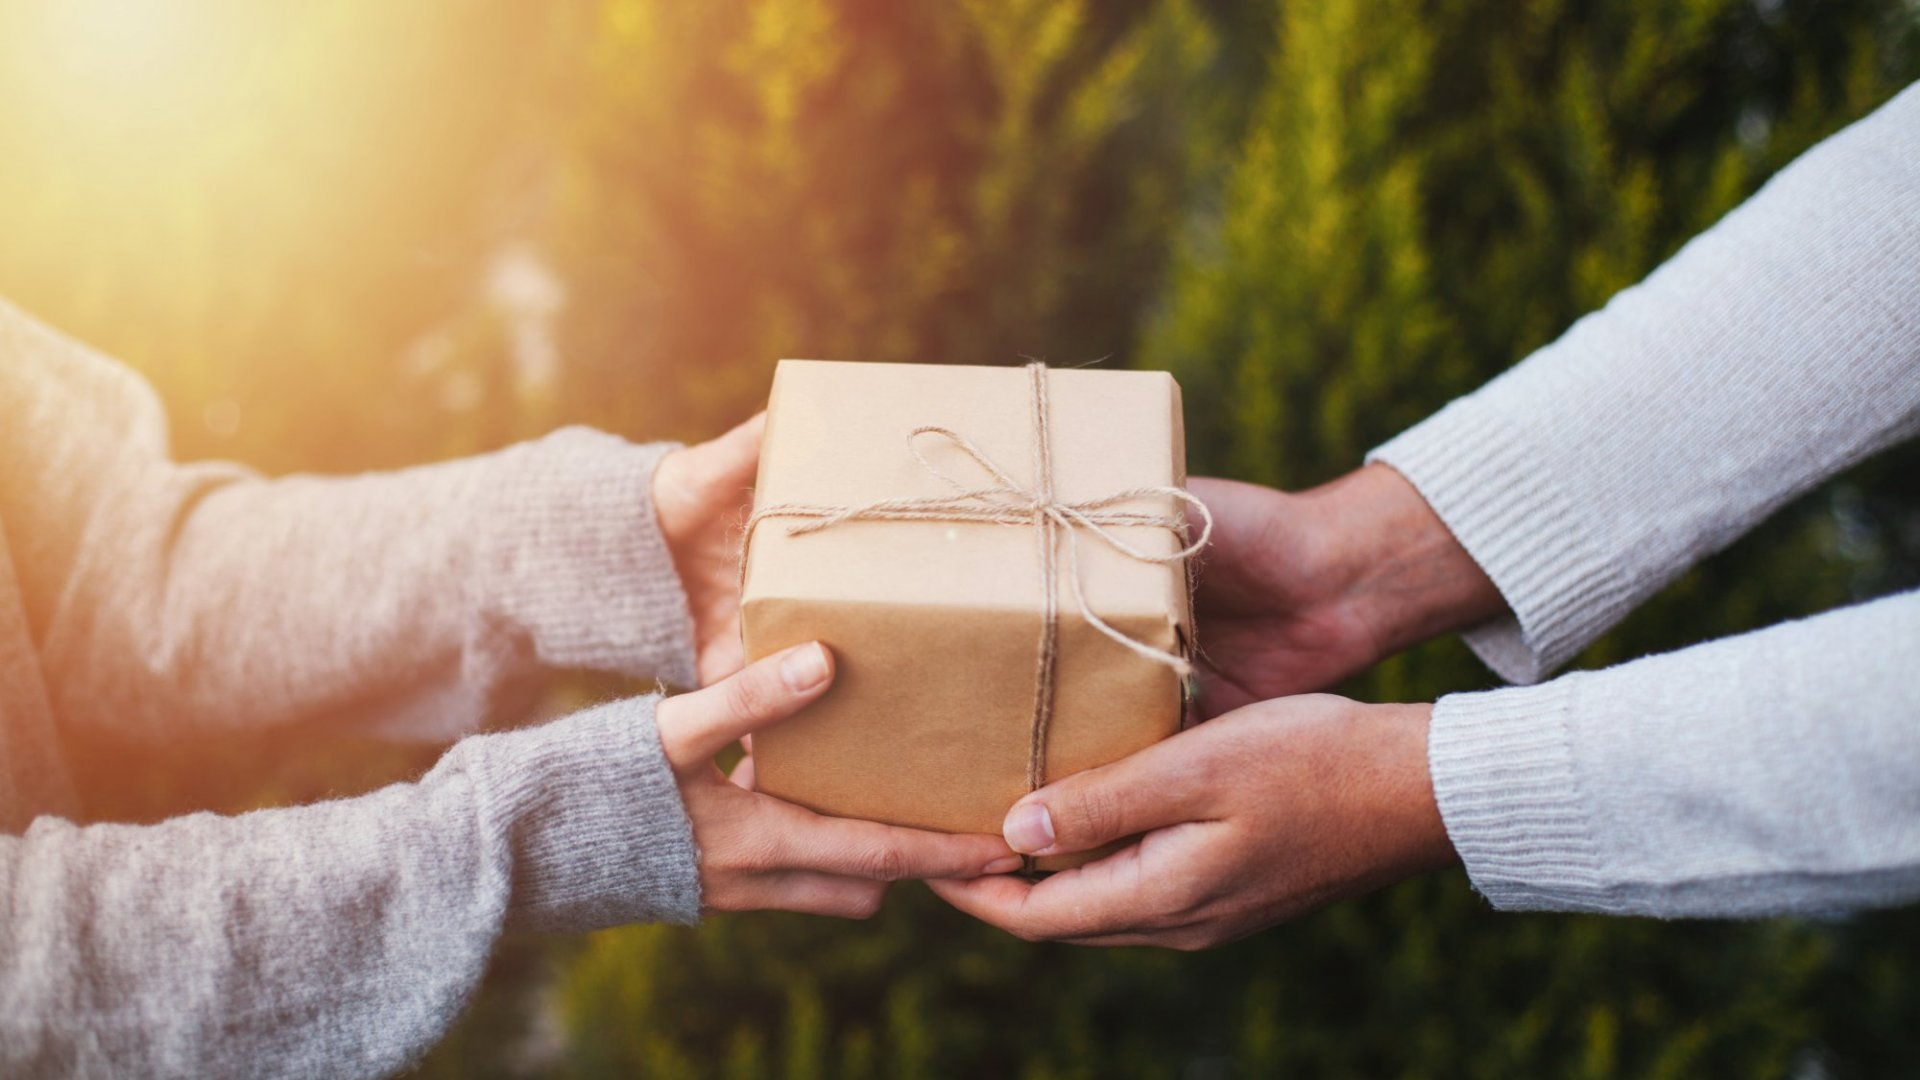 How to Give Holiday Gifts Like an Entrepreneur